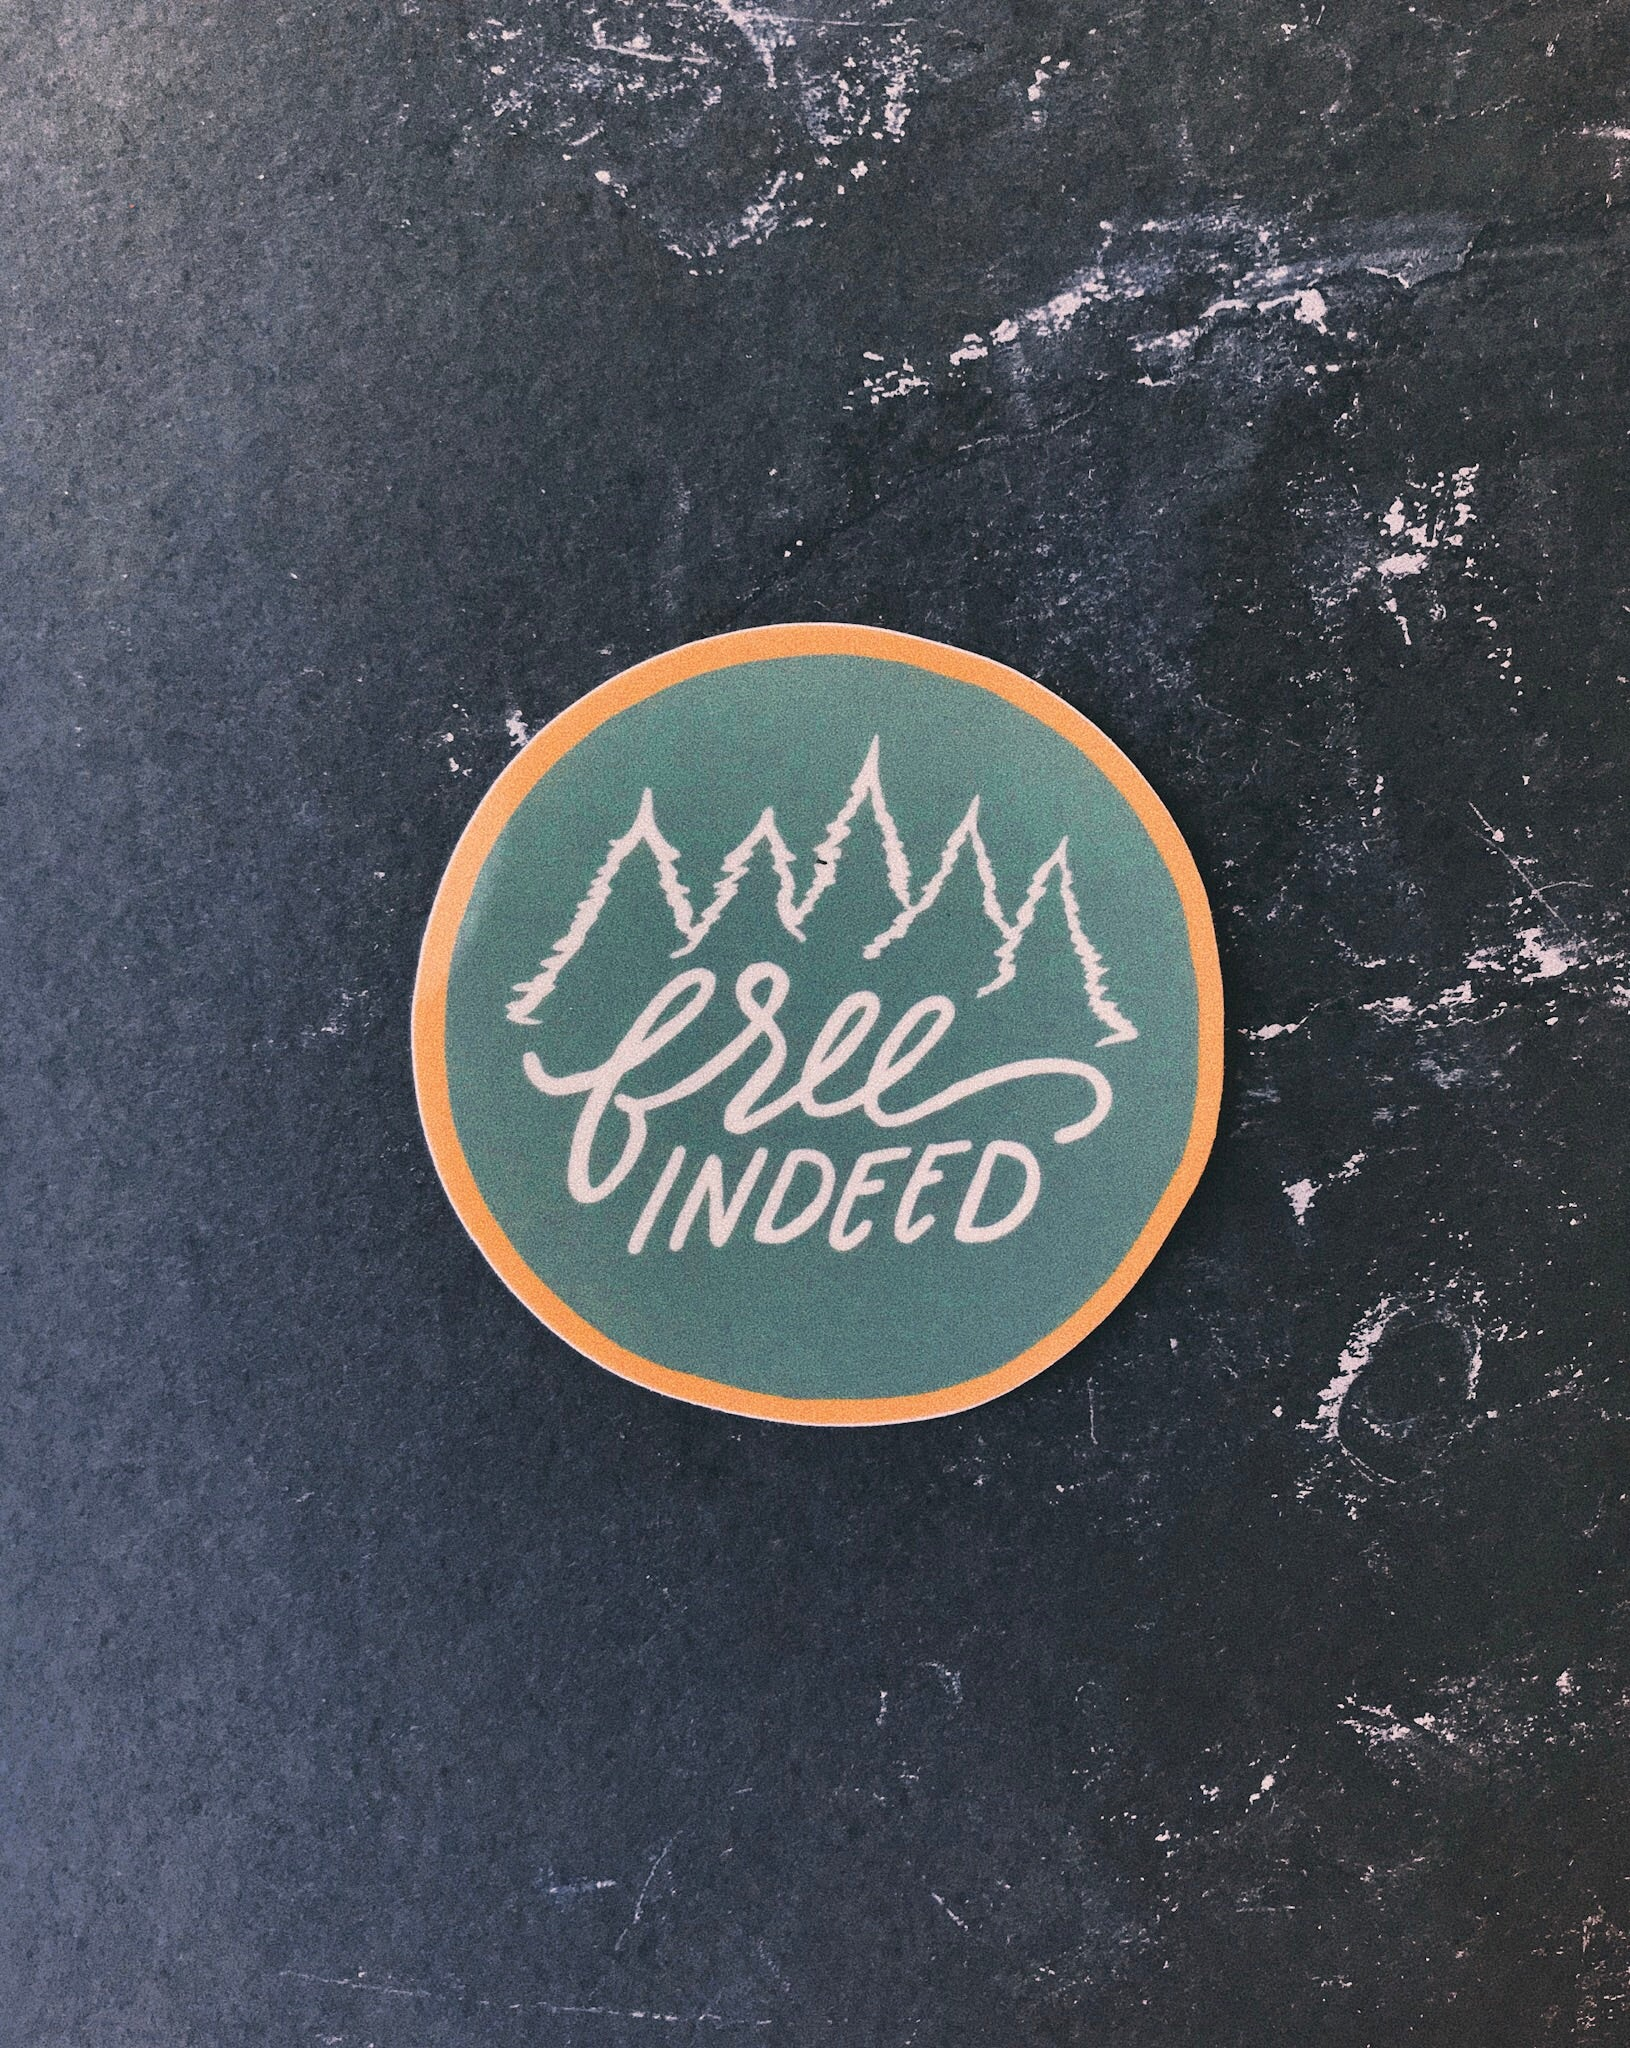 Free Indeed Sticker